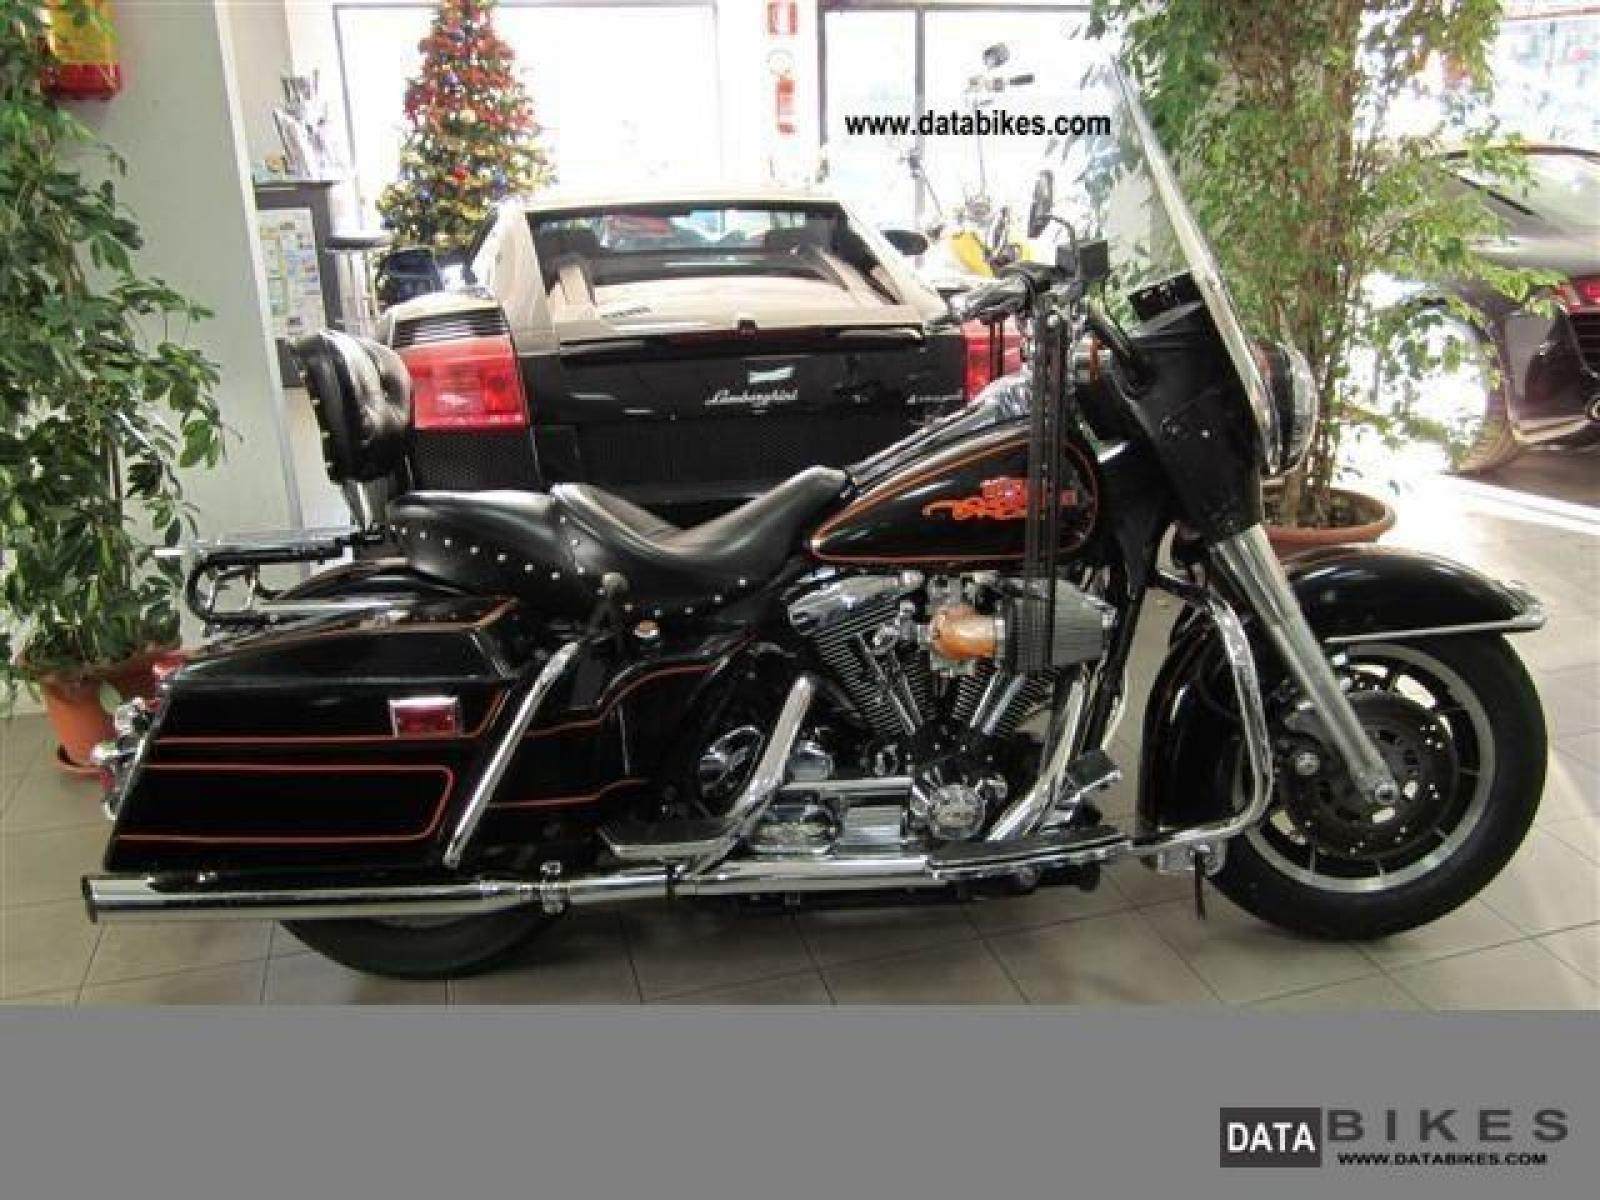 Harley-Davidson FLHTC 1340 Electra Glide Classic images #79912